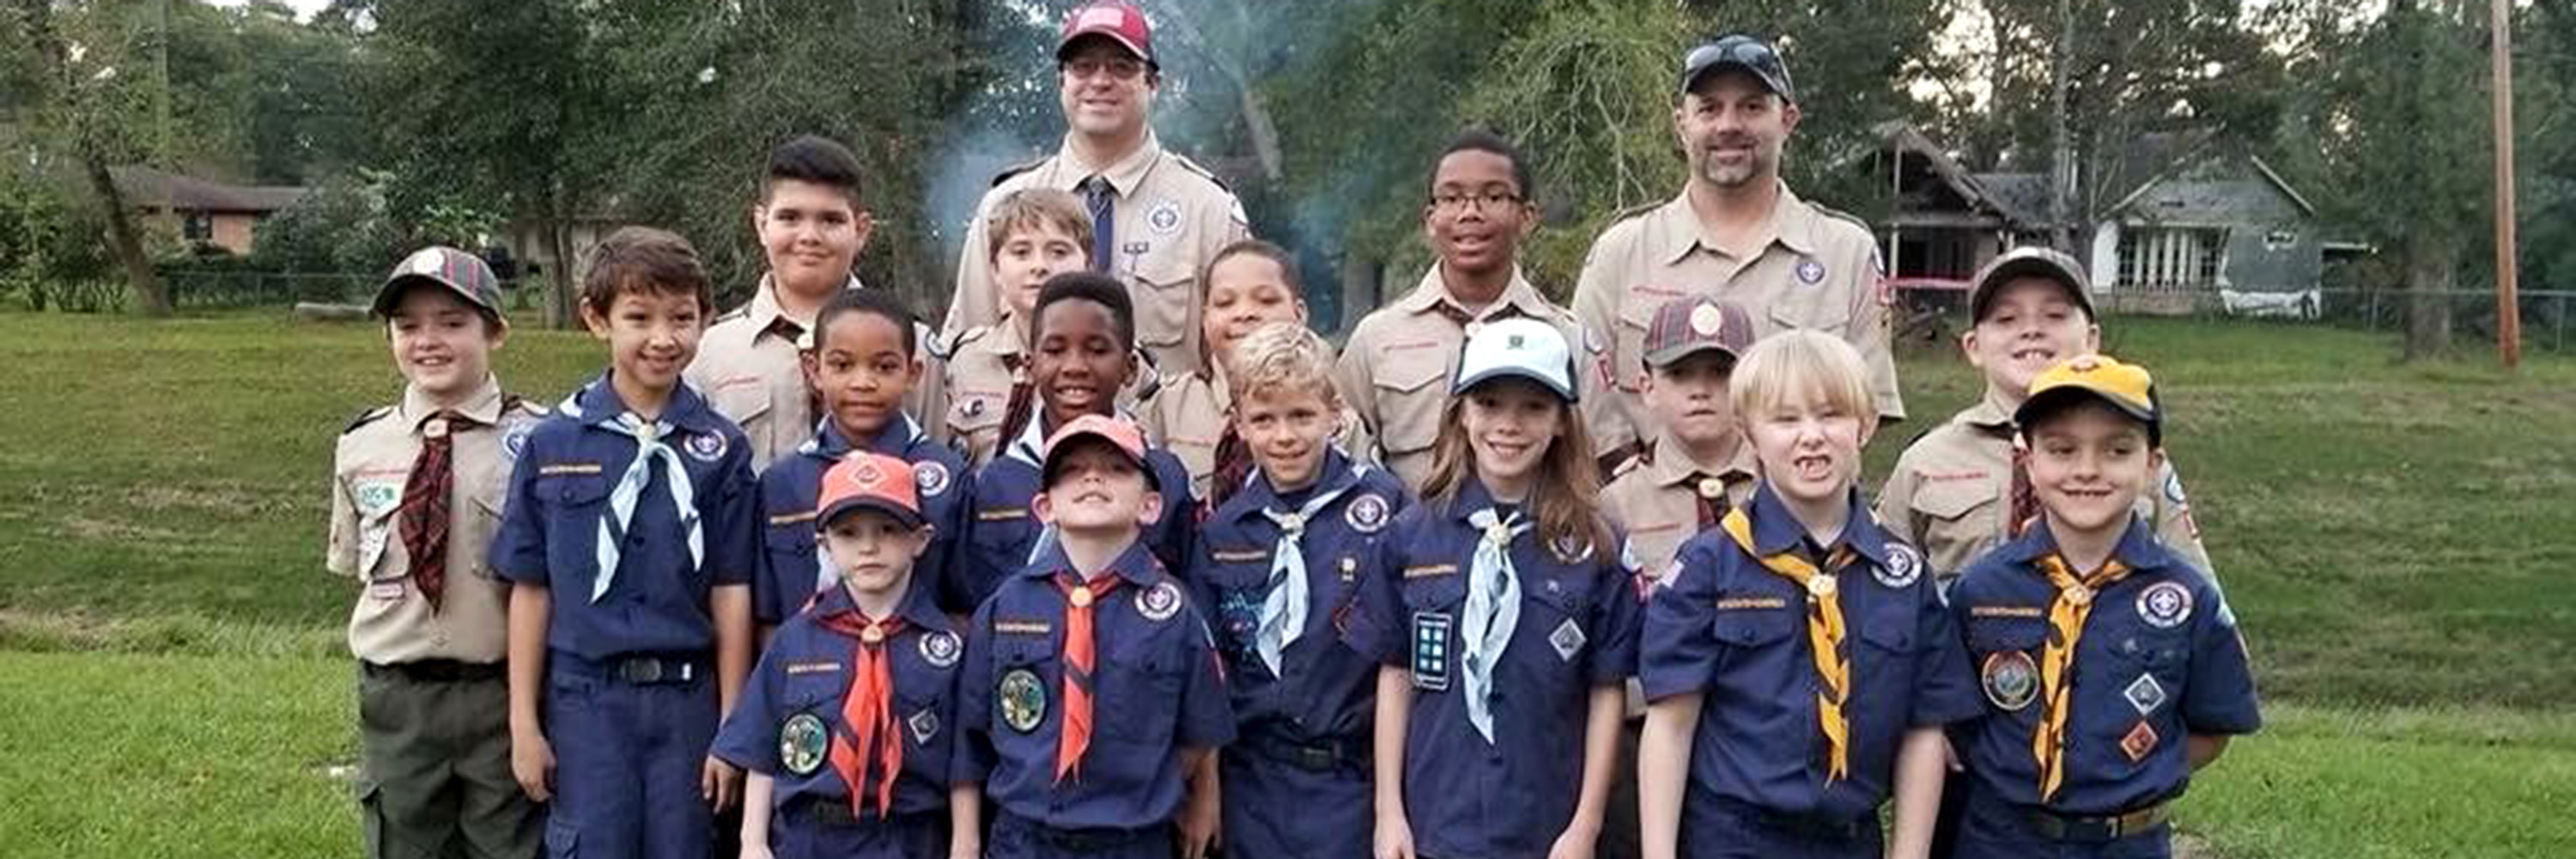 Three Rivers Council BSA